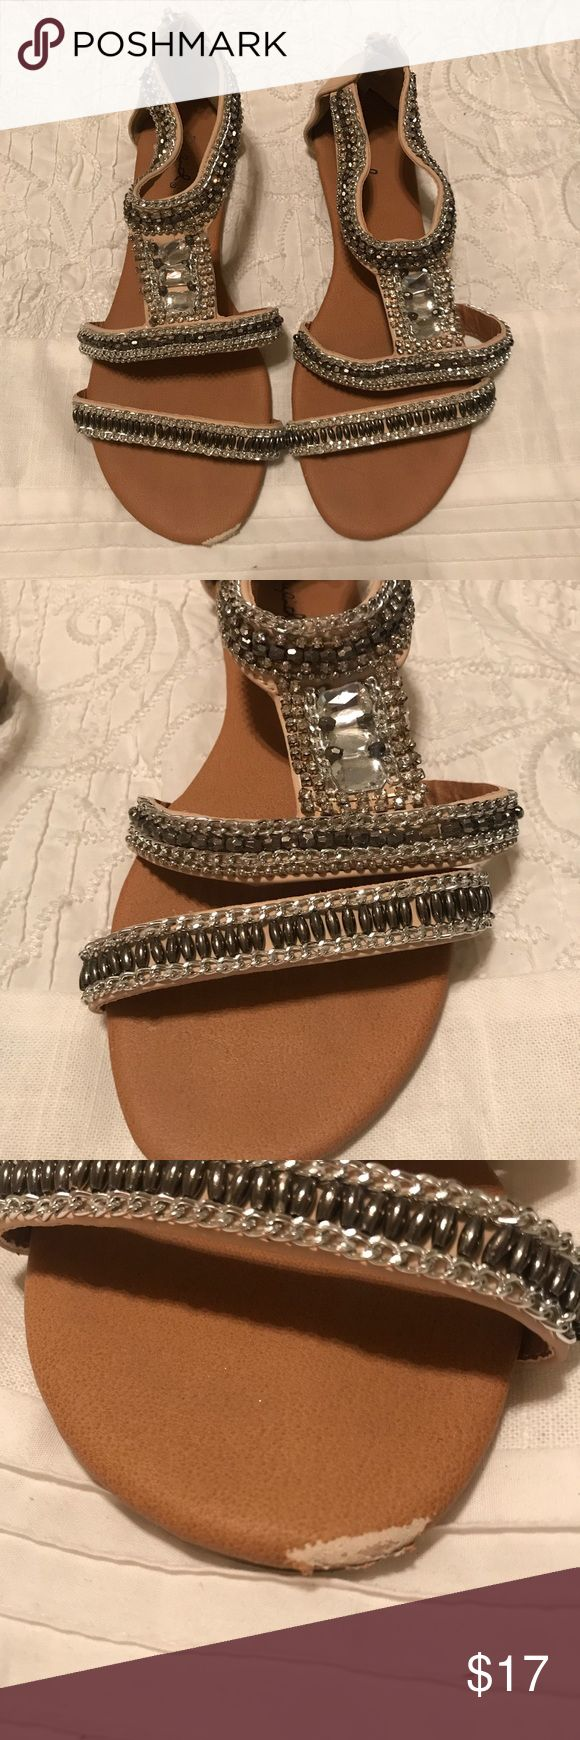 Red dress boutique beaded sandals Red dress is an online boutique in Georgia!  -bought two summers ago -bead work is still in perfect condition  -only worn a few times -one scuff as shown in picture Red Dress Boutique Shoes Sandals